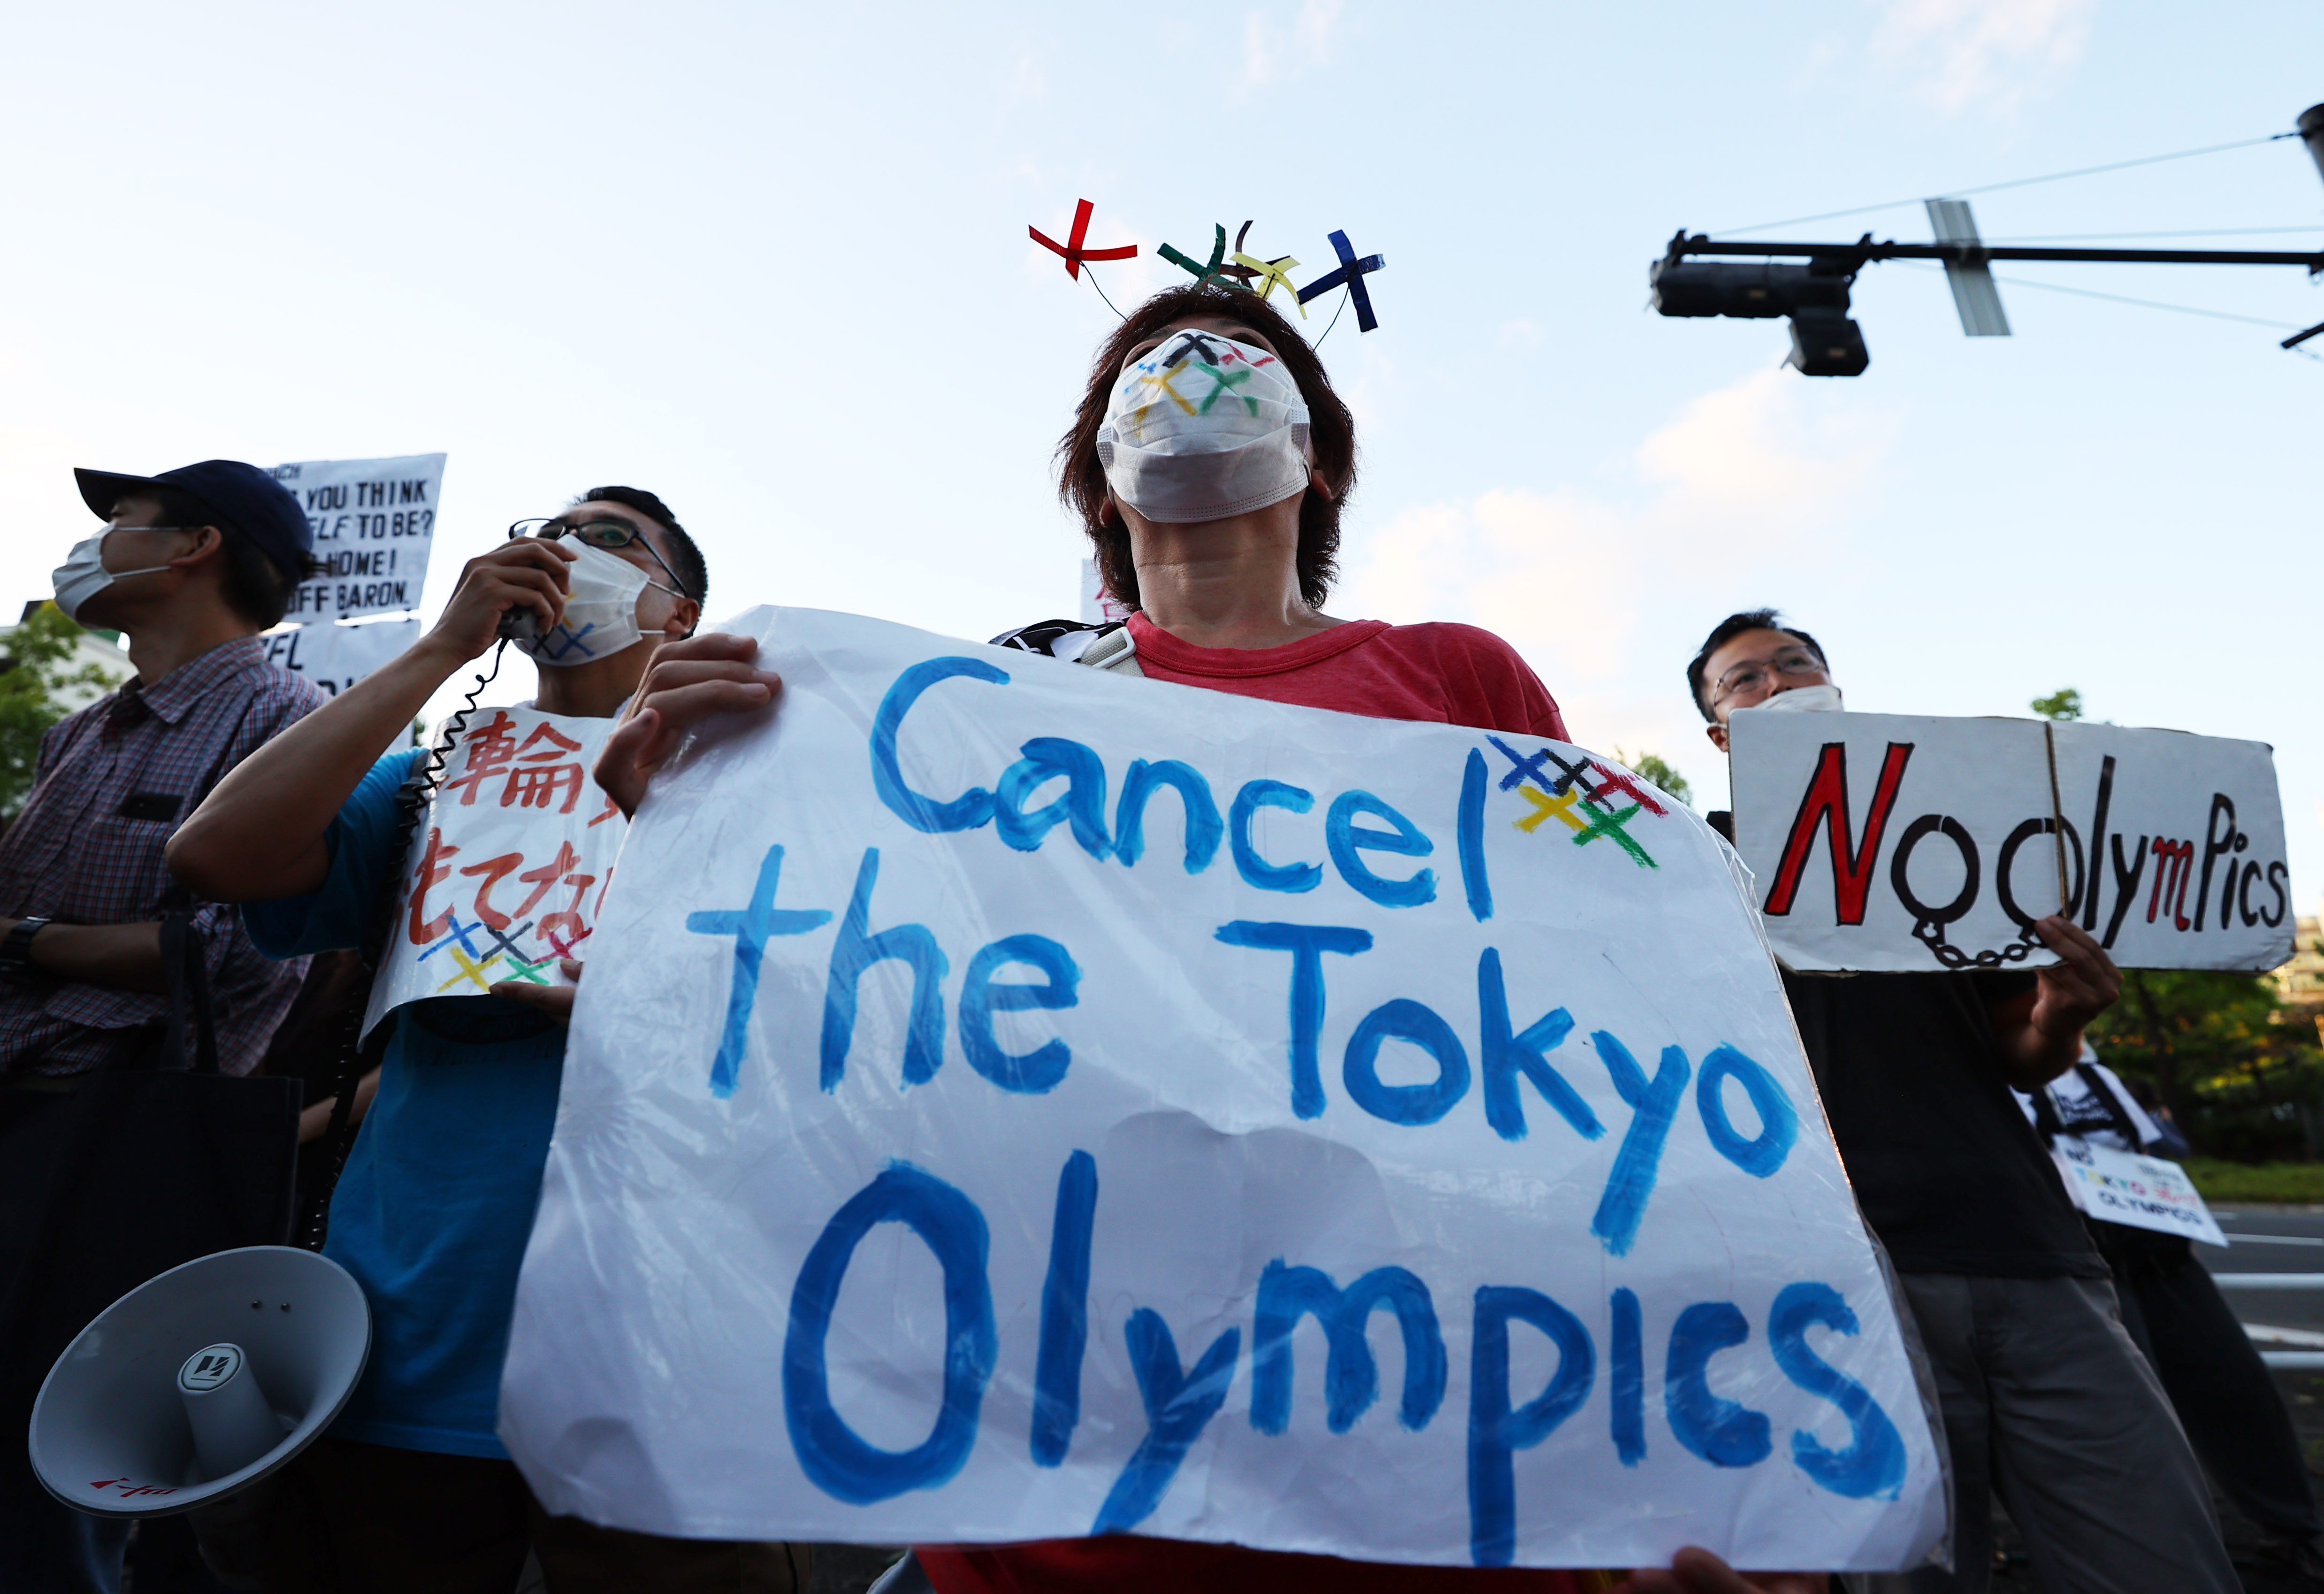 Tokyo 2020 Olympics - People protest against the Tokyo 2020 Olympic Games - Tokyo, Japan - July 18, 2021 Protesters during a rally near Akasaka State Guest where International Olympic Committee (IOC) President Thomas Bach attends a welcome ceremony hosted by the Japanese government REUTERS/Kim Kyung-Hoon